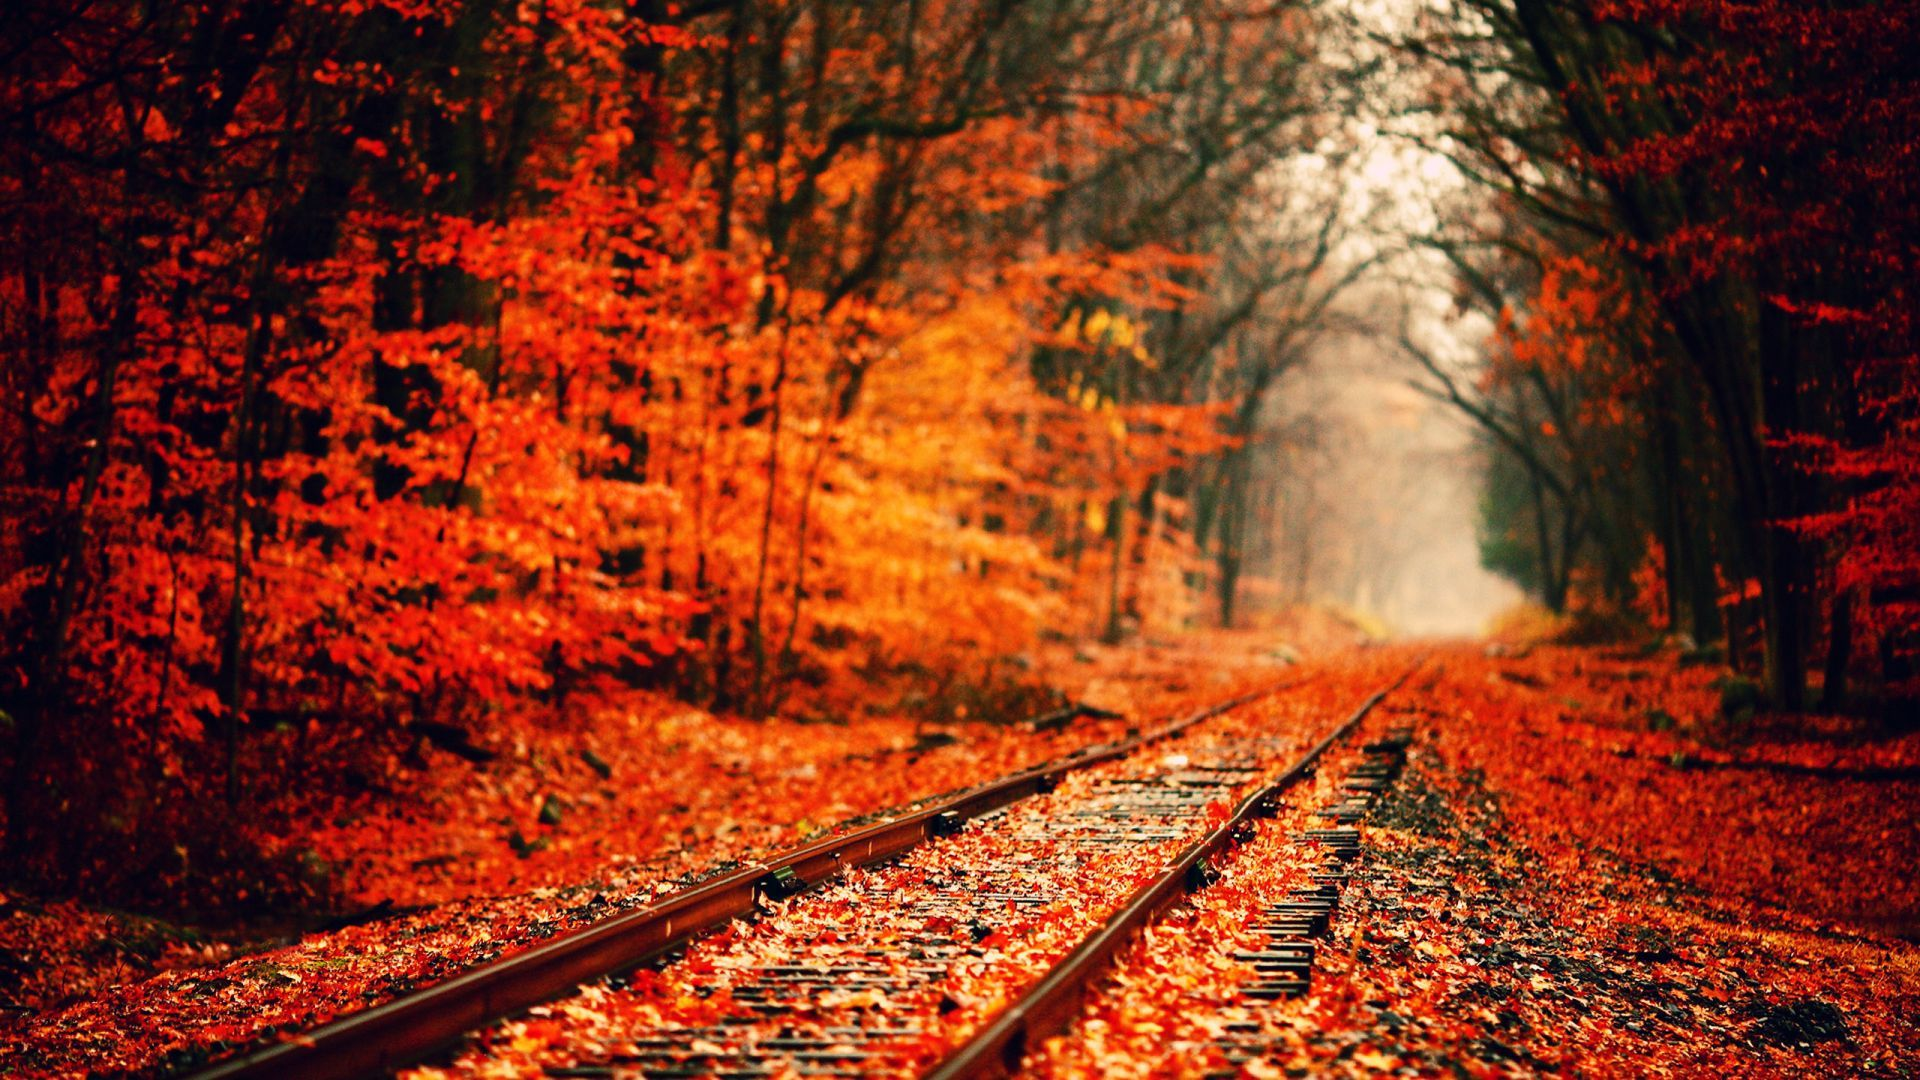 Autumn Tumblr Wallpaper Background ypz 1920x1080 px 414